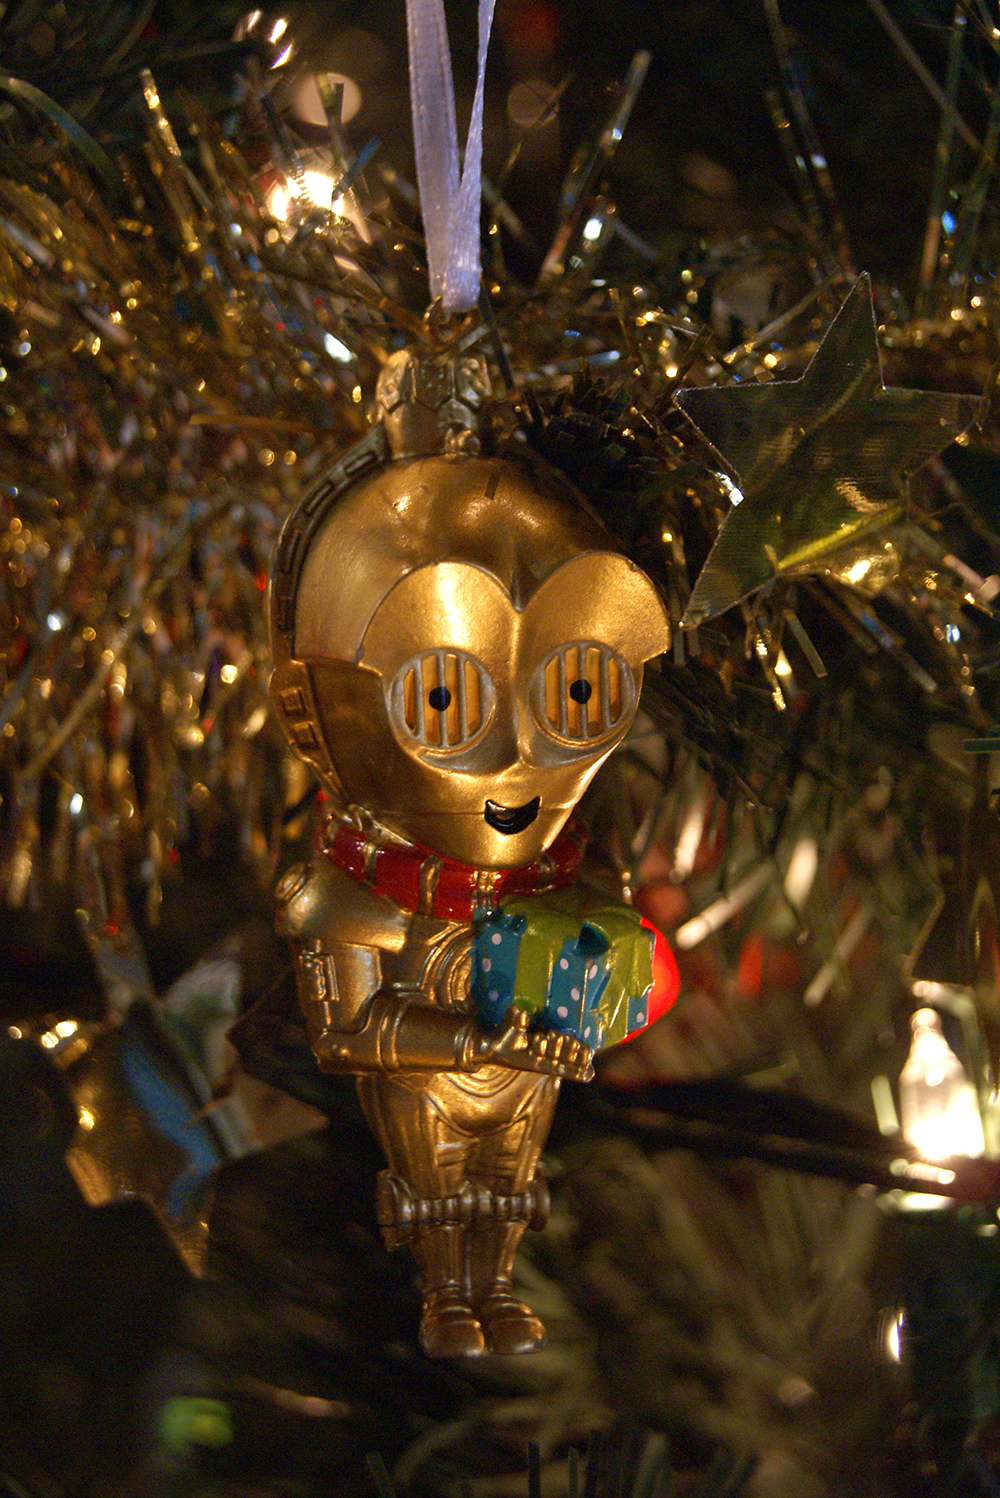 Rowan's C-3PO ornament - from Jeff, Jocelyn, and the kids